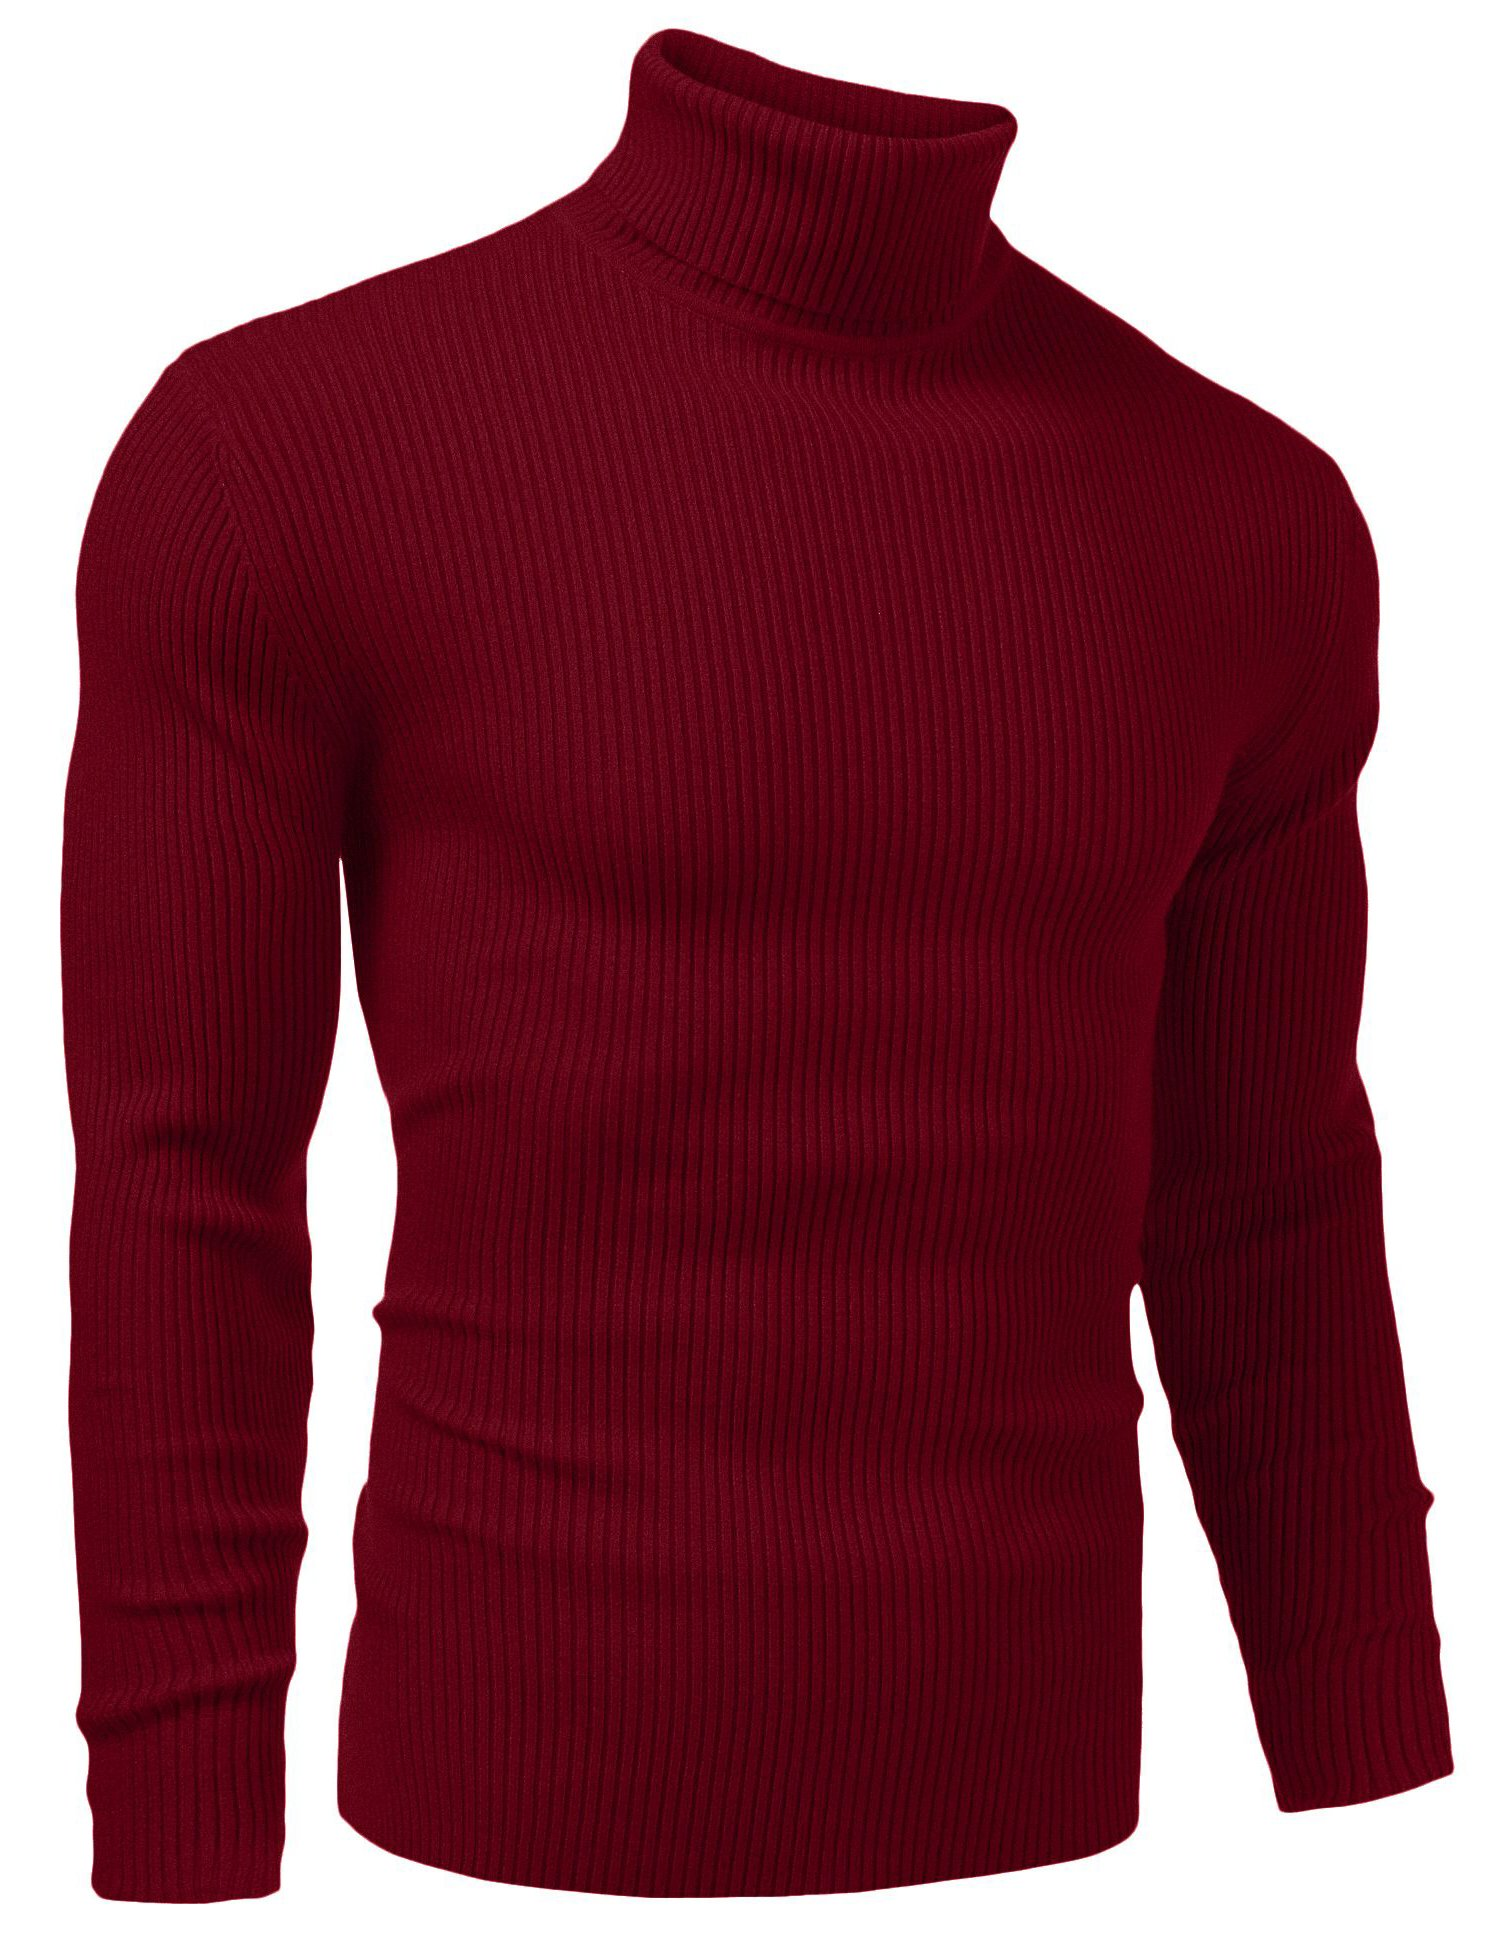 Vansop Mens Long Sleeve Knitted Turtleneck Slim Fit Pullover Thermal Sweaters(Wine Red L)